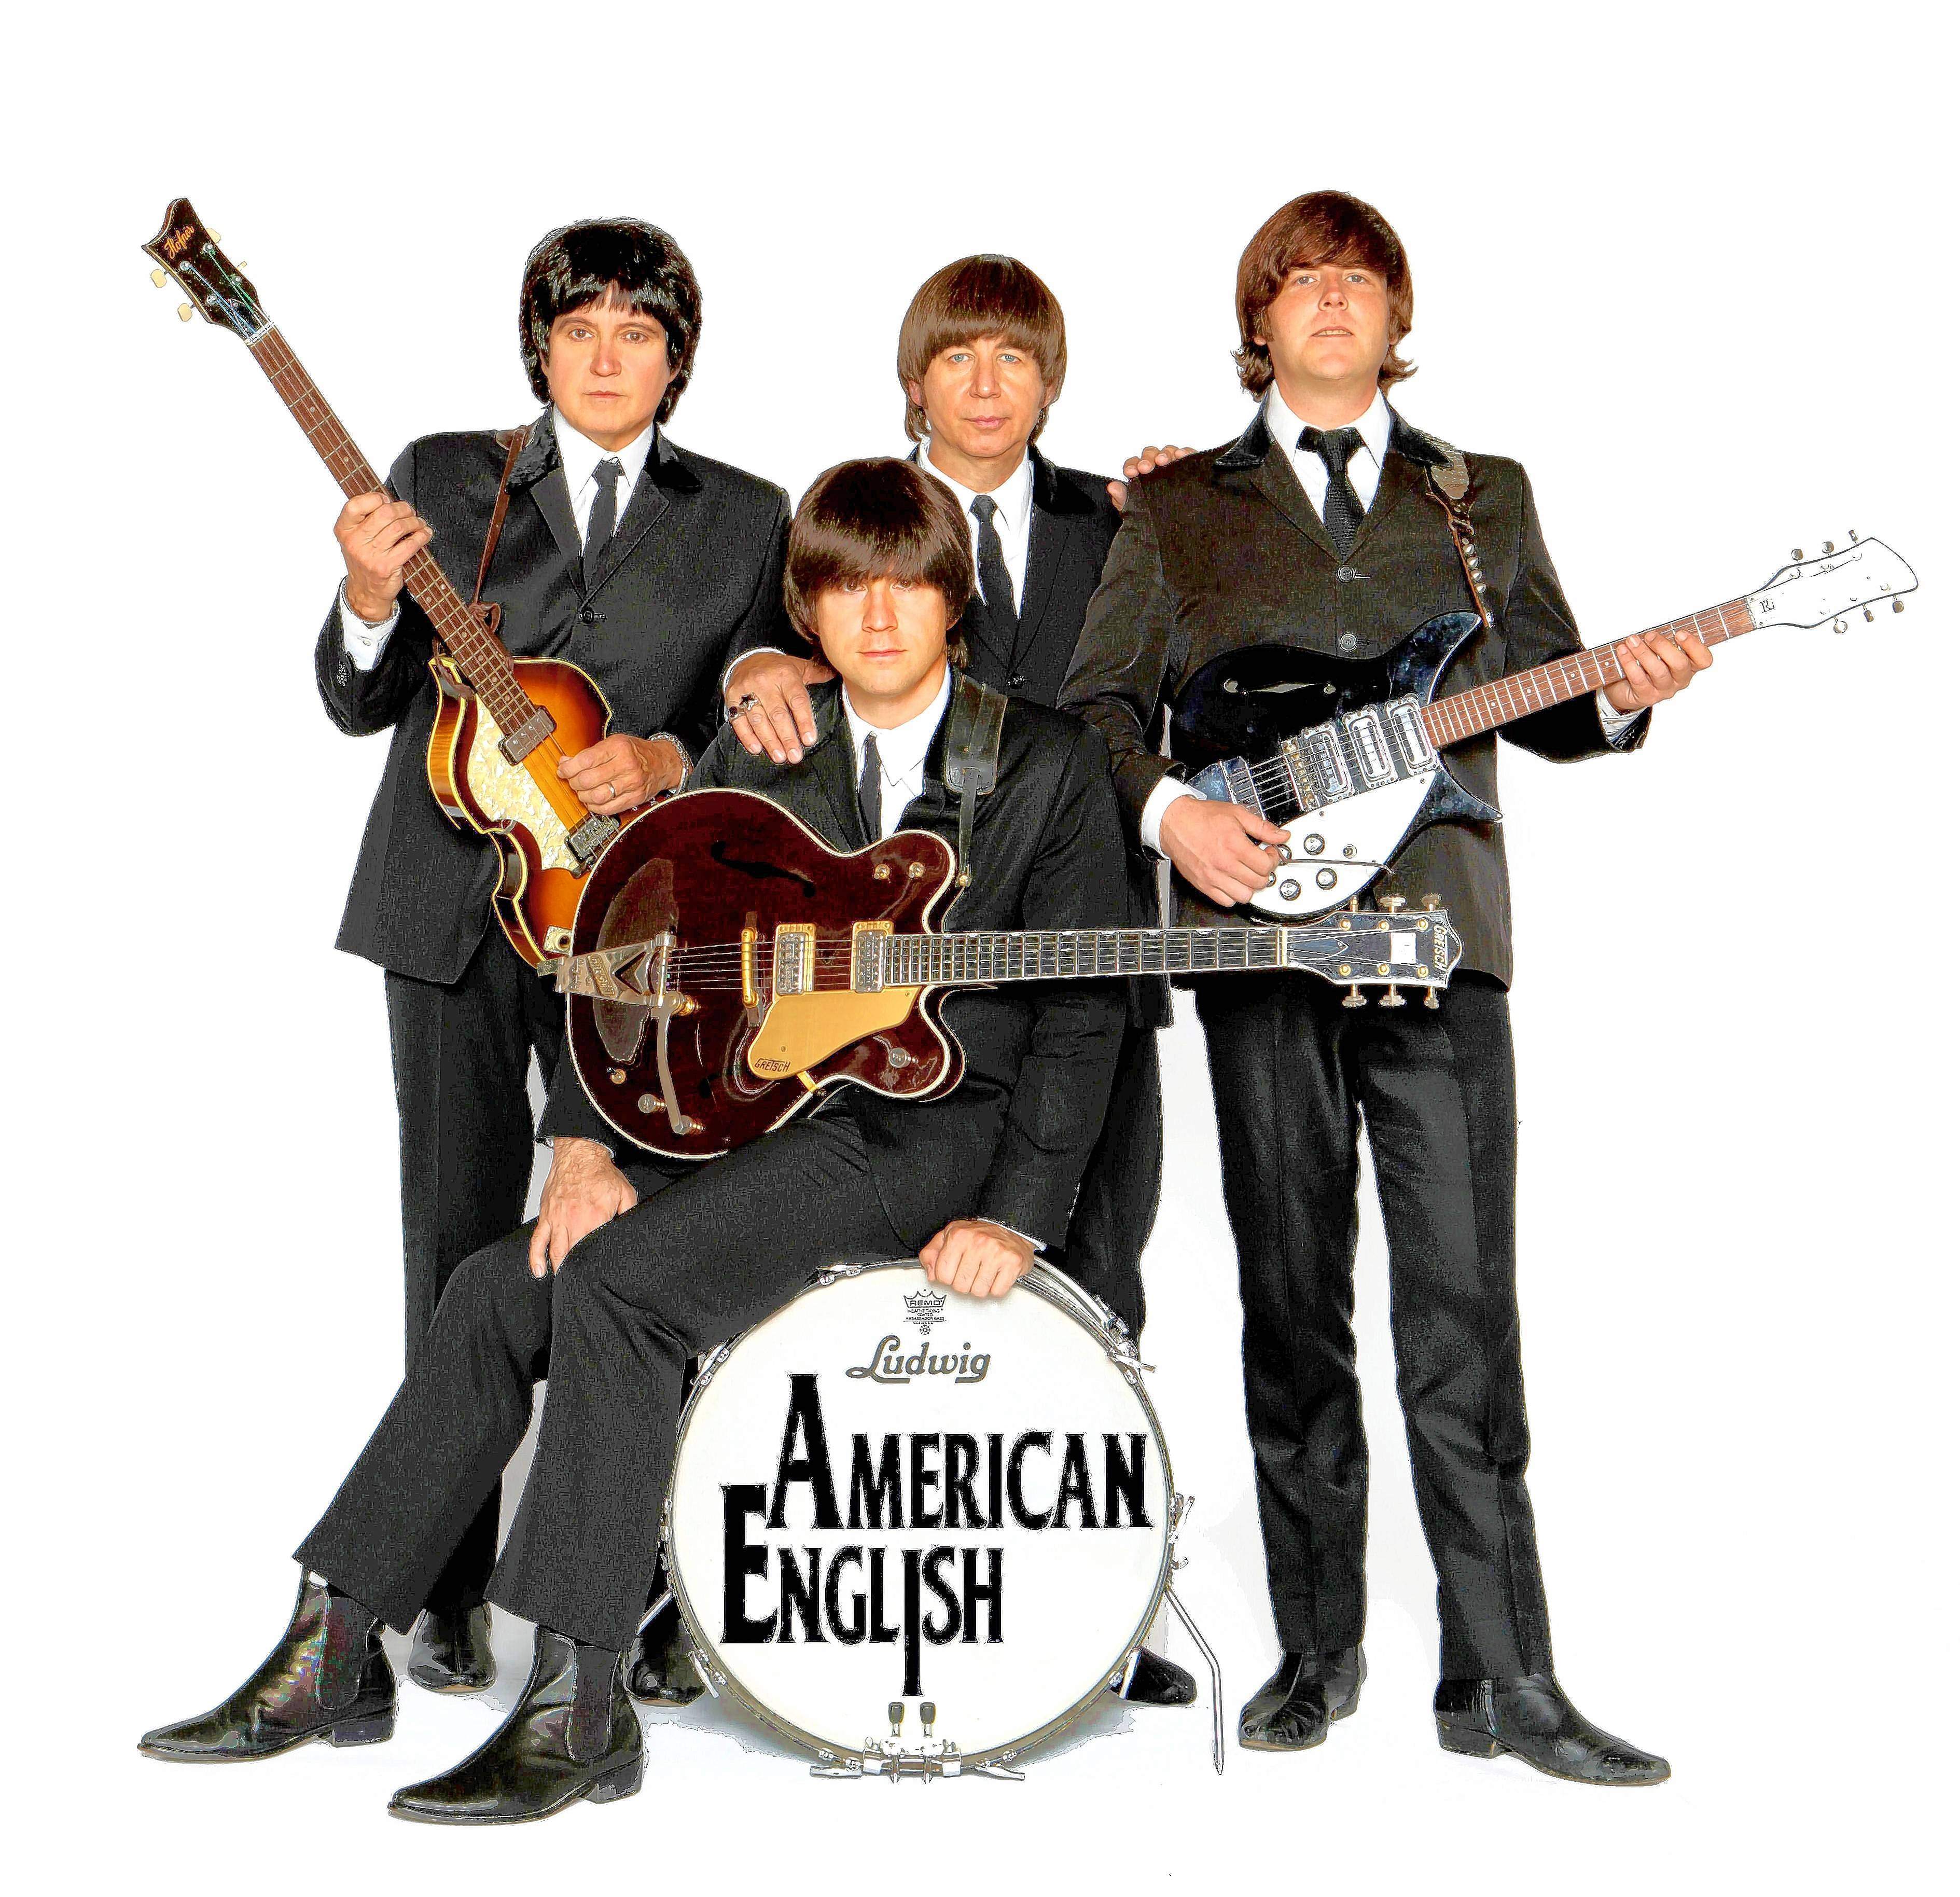 American English, a Beatles tribute band, will open the 2017 Lakeside Pavilion Free Outdoor Pop Music Series with a July 14 concert at the College of DuPage in Glen Ellyn.